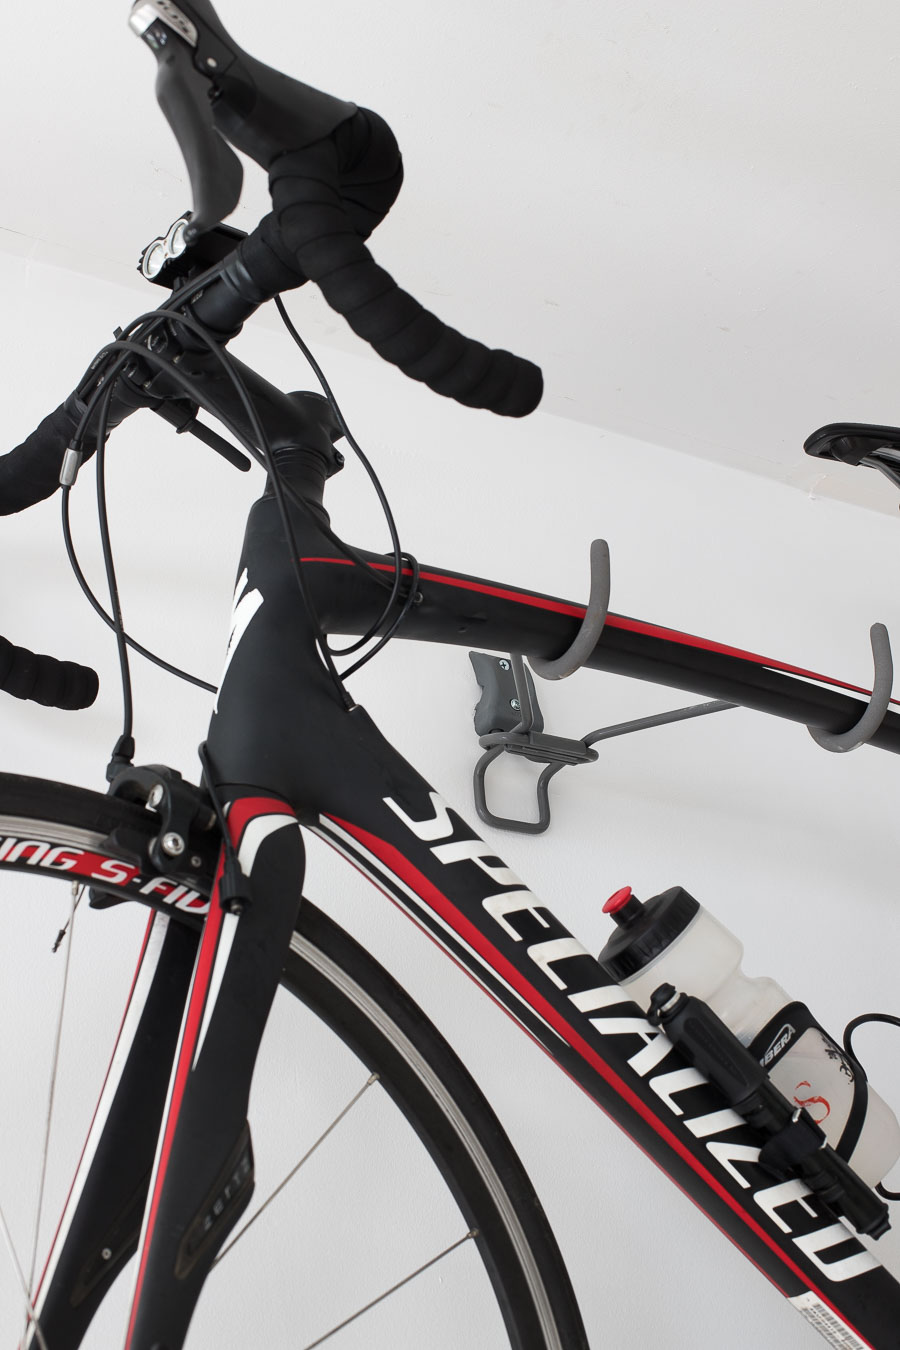 A smart way to hang your bike on the wall in the garage - an Elfa wall-mounted bike rack!